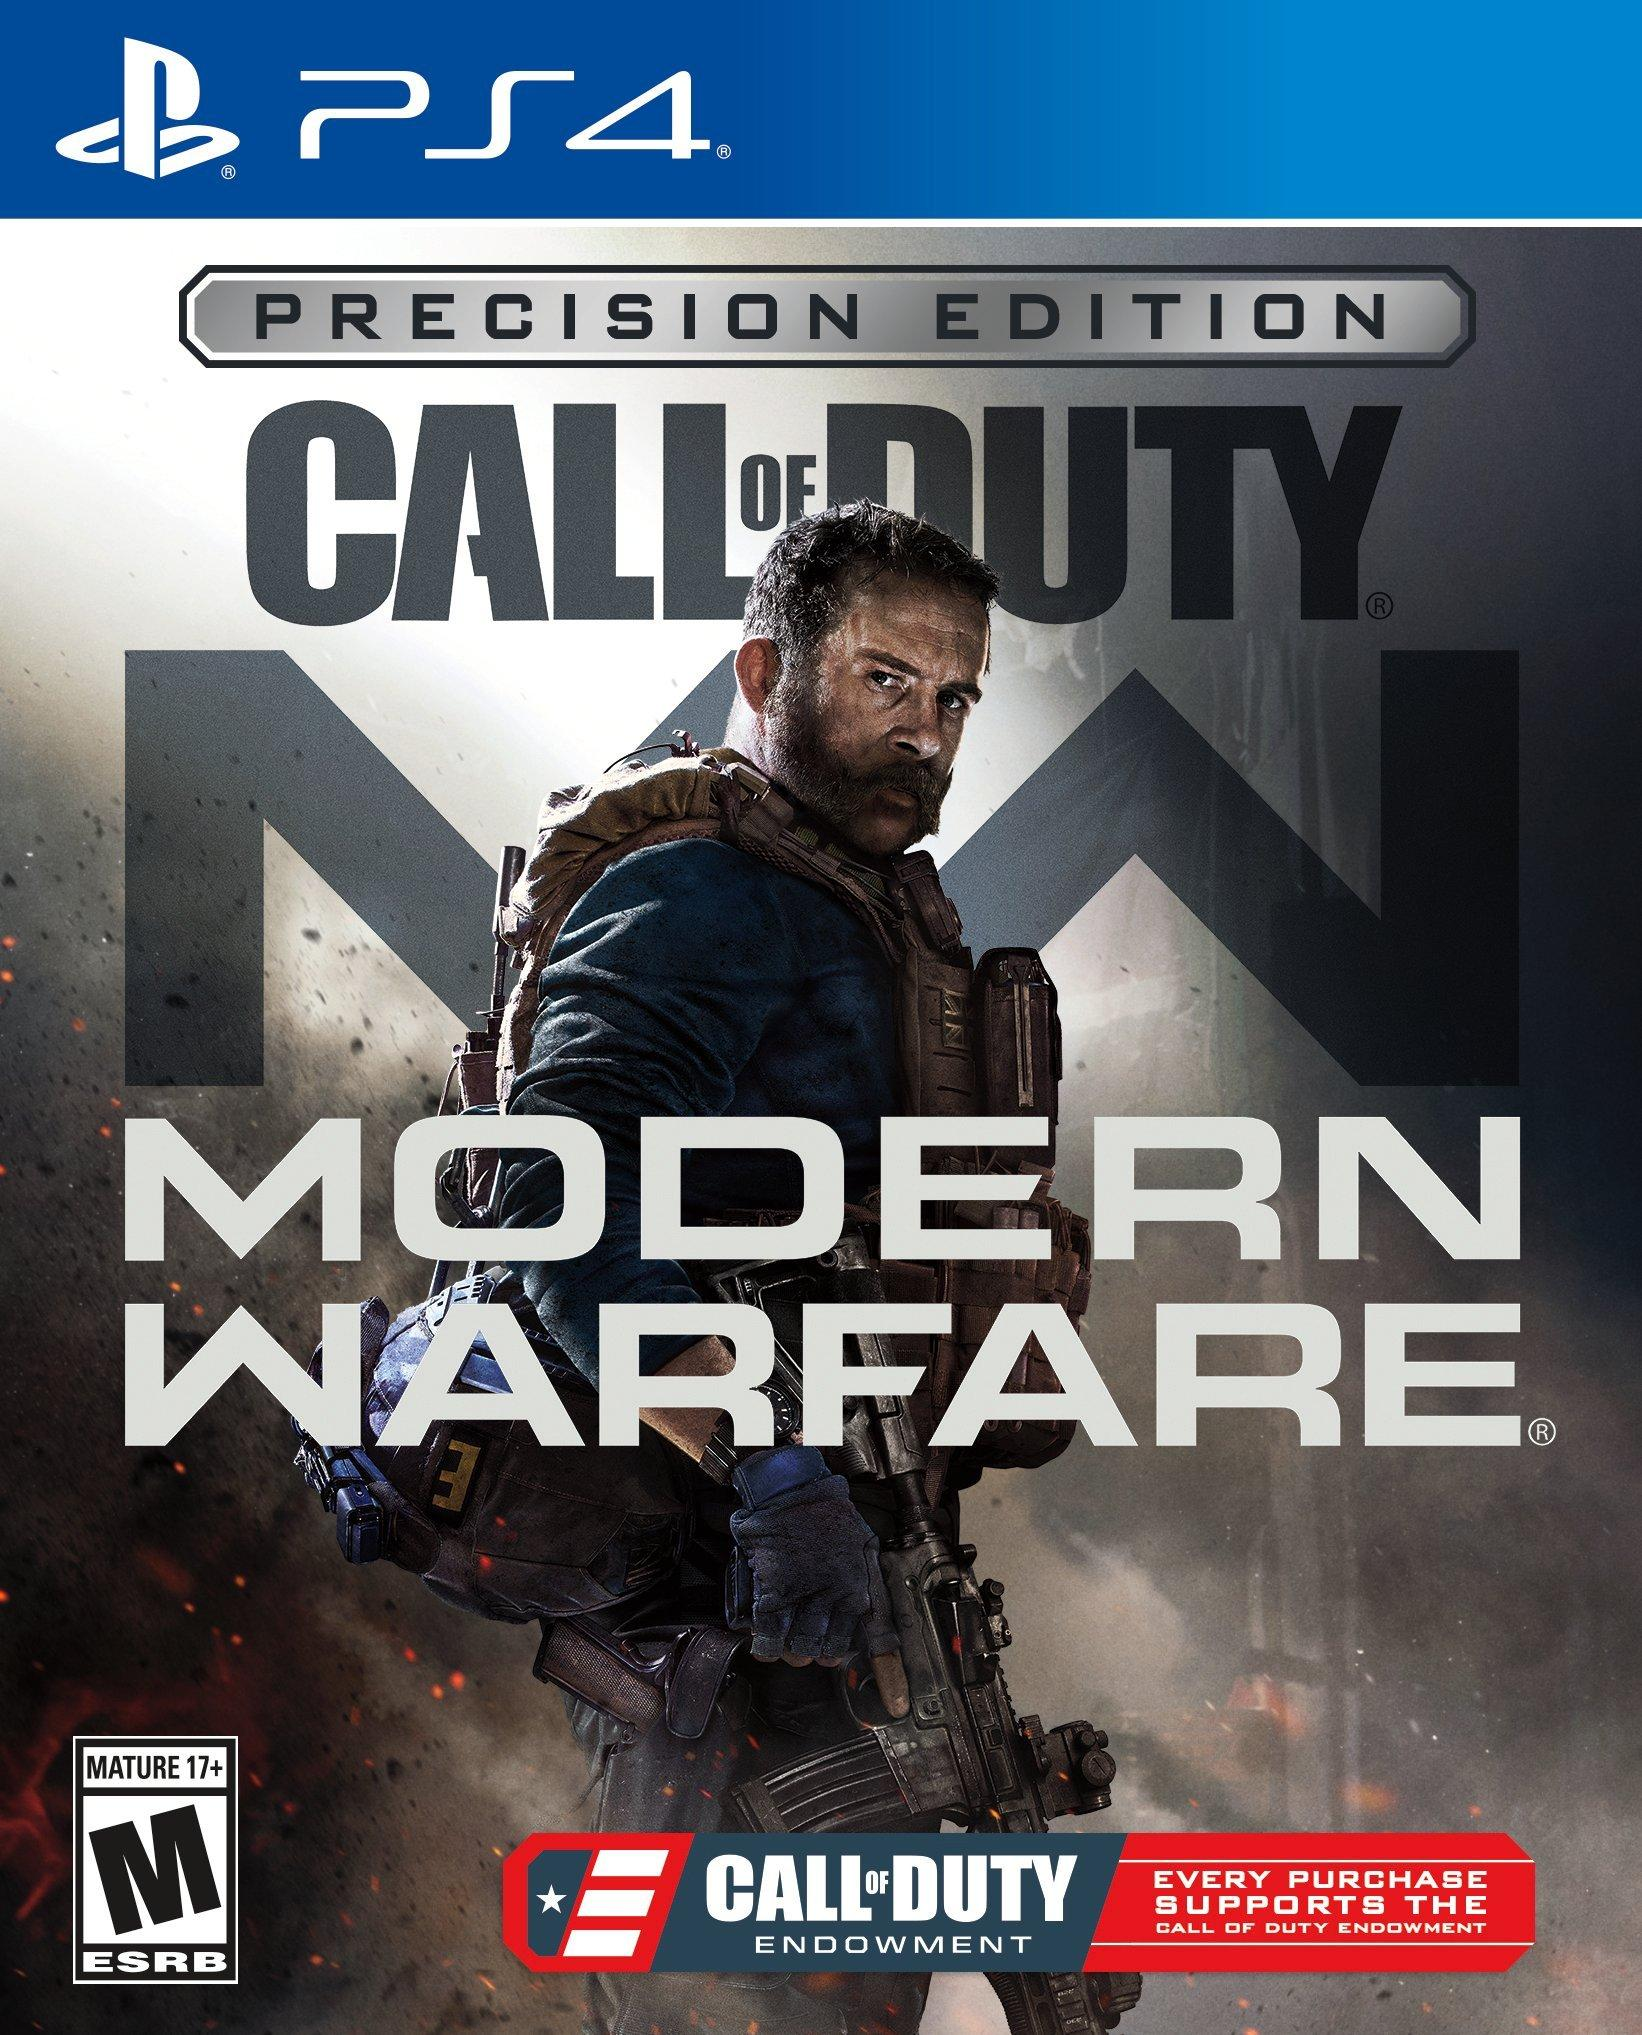 Modern Warfare Spec Ops Survival Mode is PS4 Exclusive for 1 Year